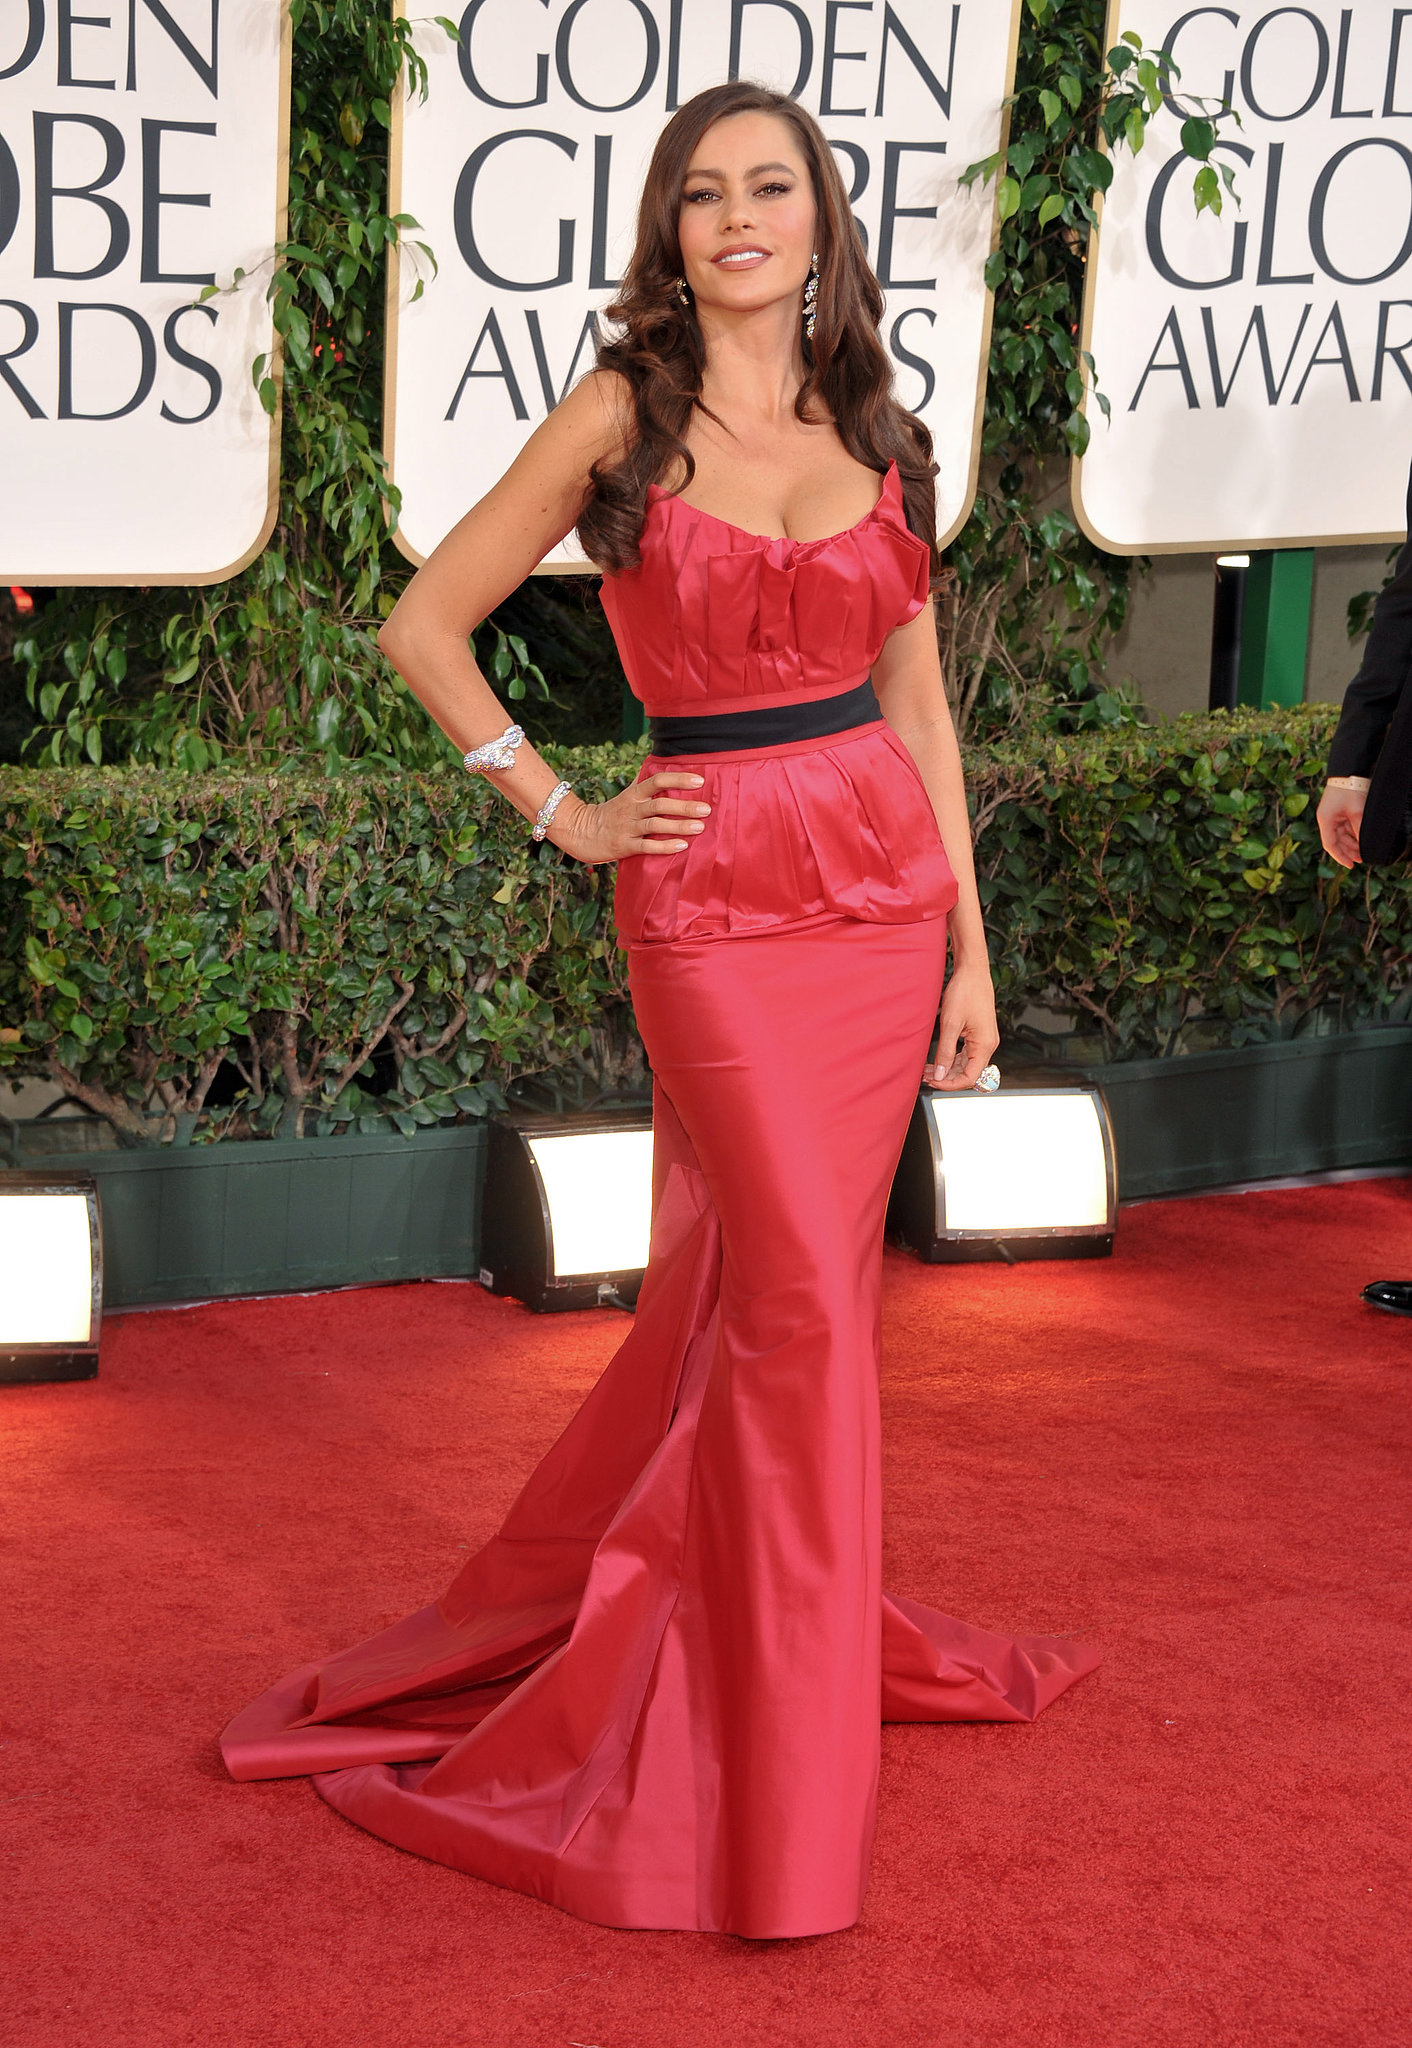 At the 2011 Golden Globe Awards, Sofia showed her love for Vera Wang donning yet another one of her glamorous creations. For this turn on the red carpet, Vergara chose a blazing strapless gown with back lace-up detail and a black tie belt to showcase her enviable curves.